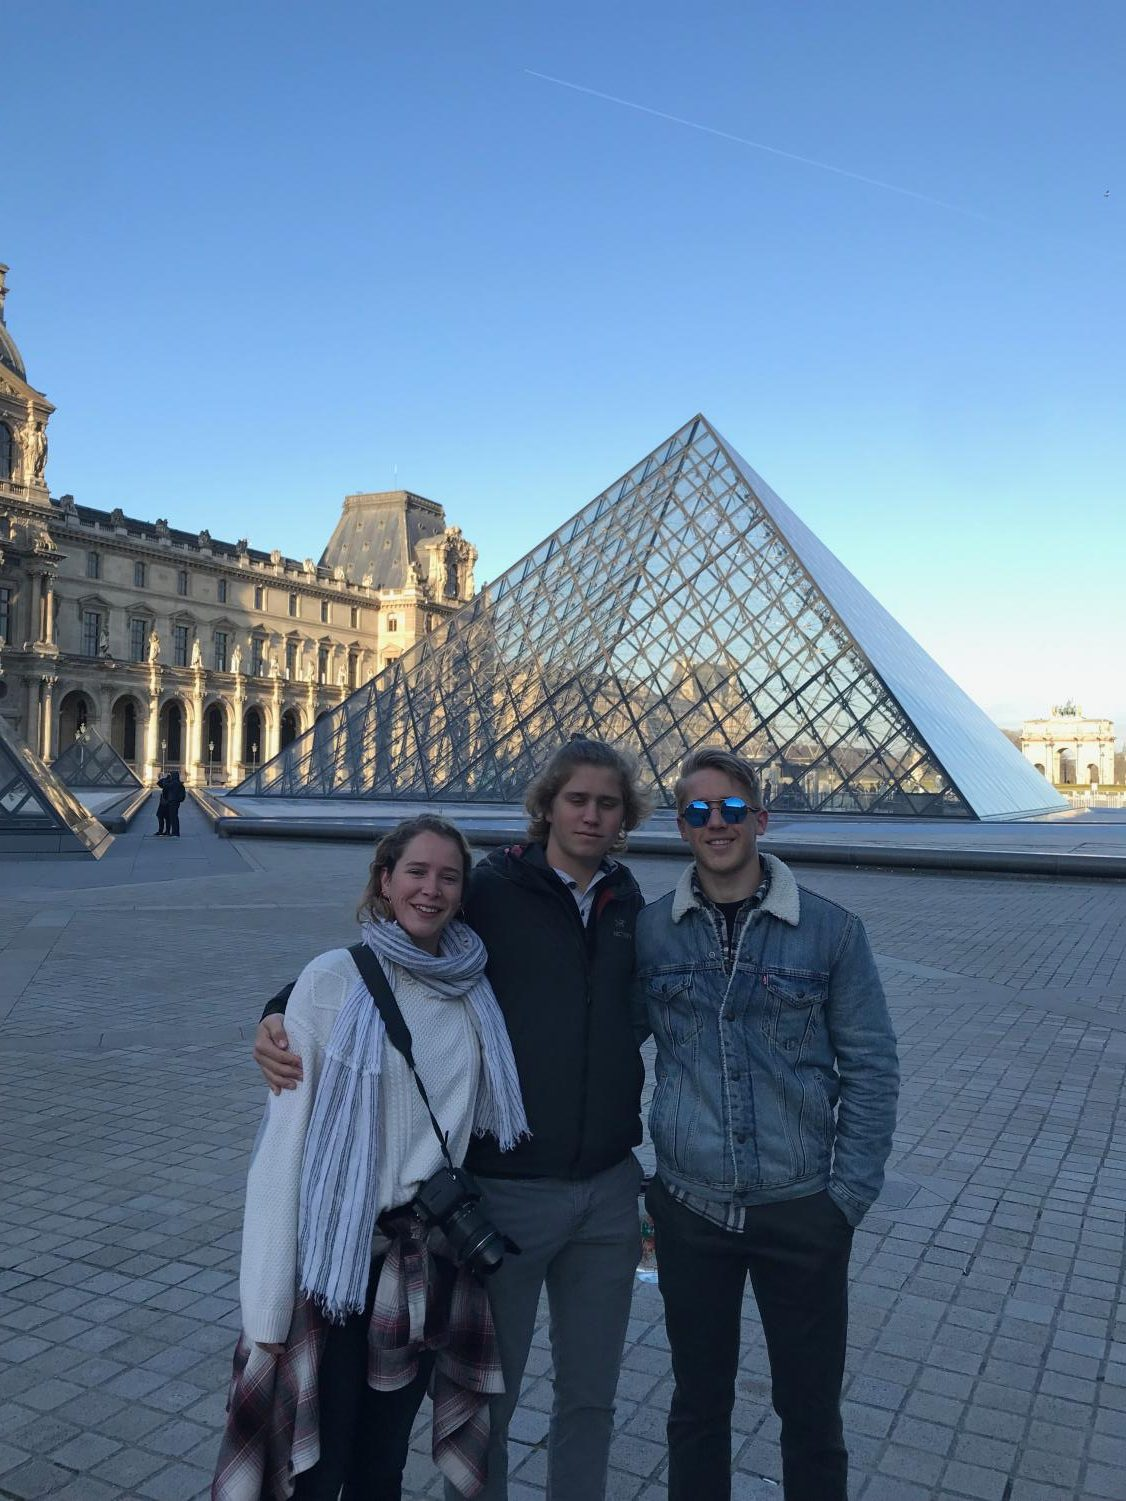 Sutton+with+his+siblings+in+from+of+the+glass+pyramid+at+the+Louvre.